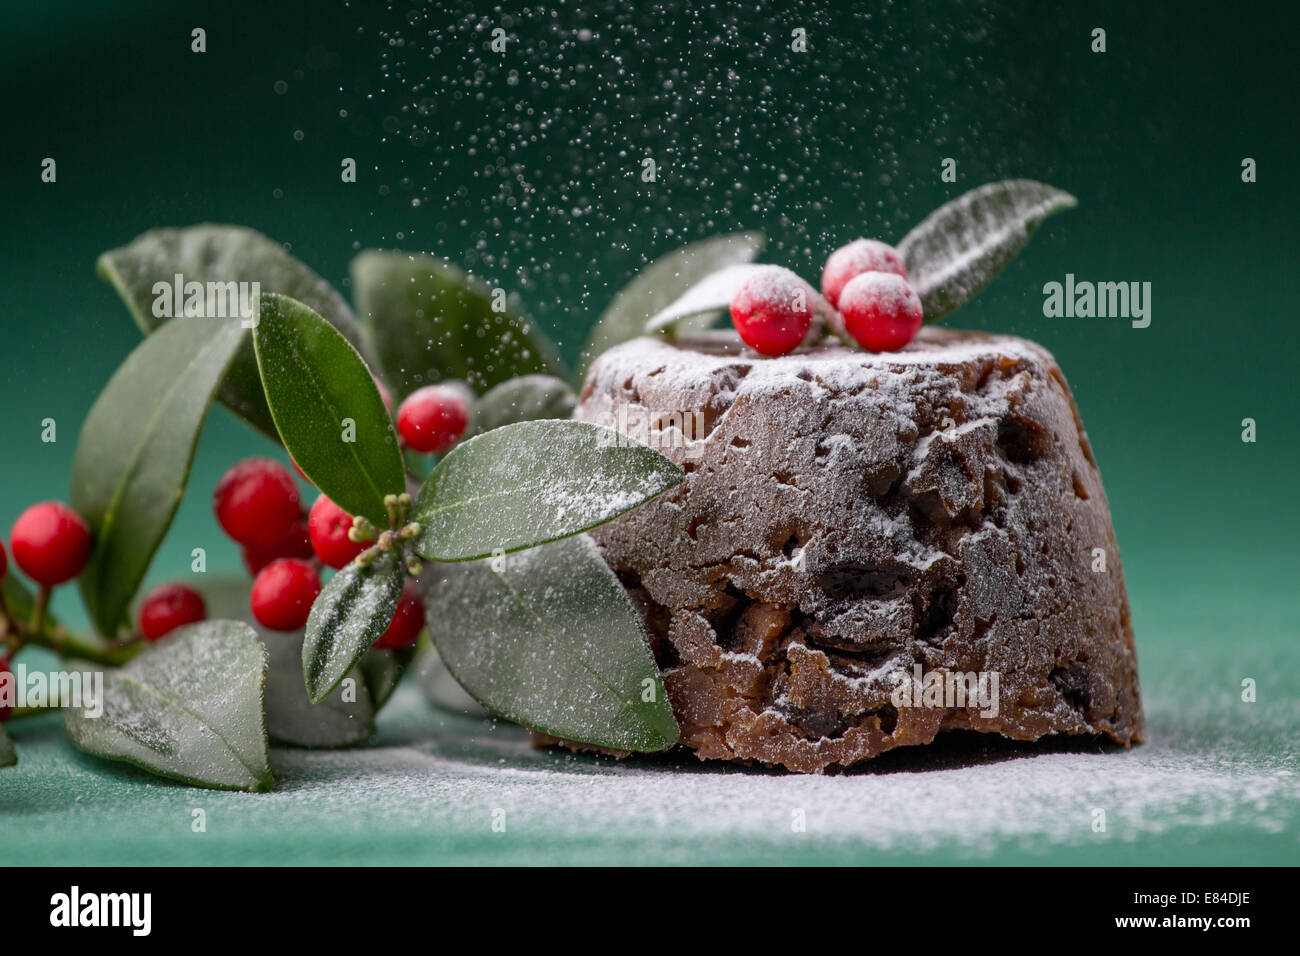 Christmas pudding dressed with winter berries and leaves and dusted with icing sugar - Stock Image